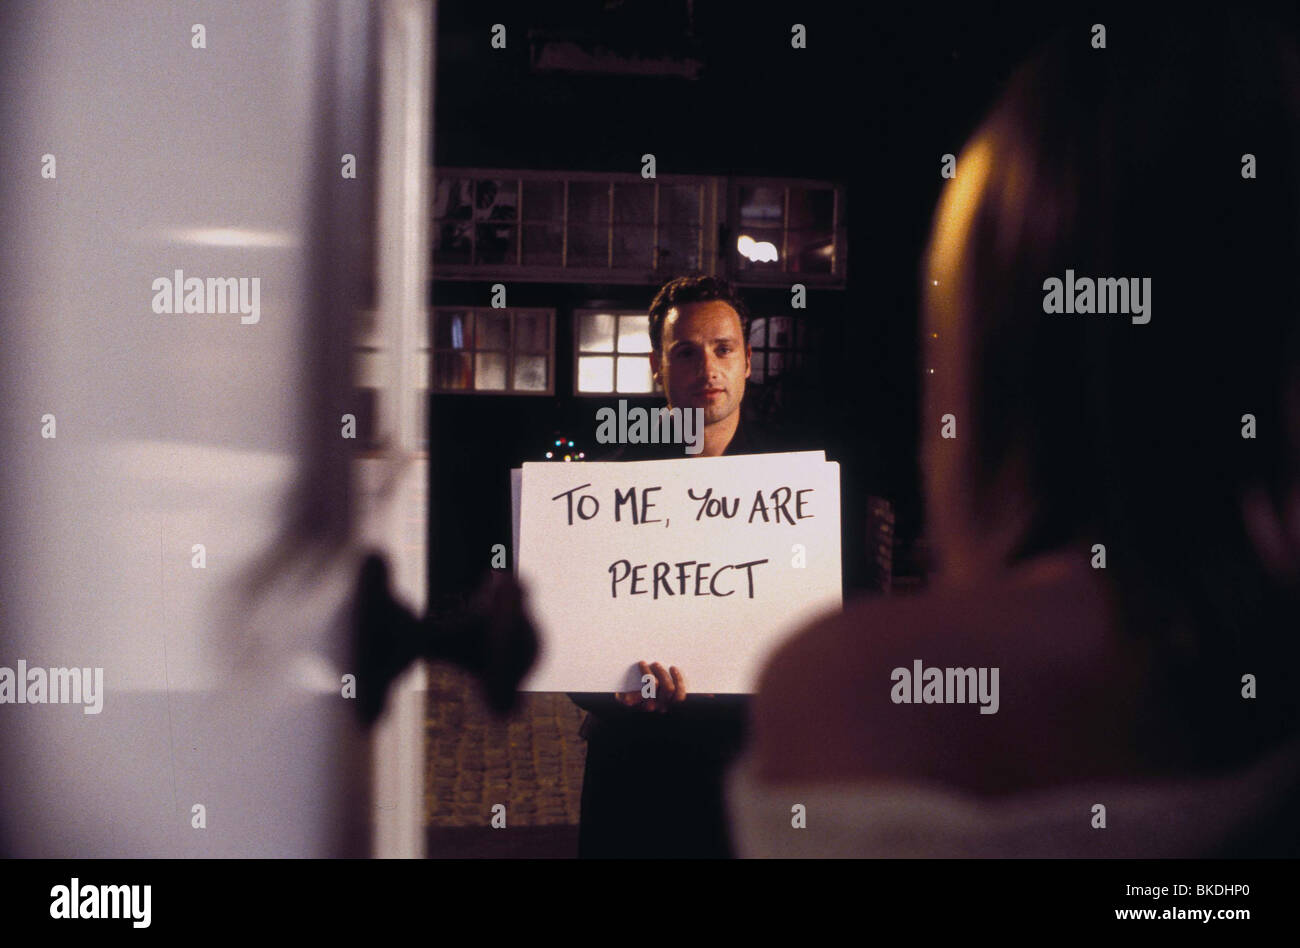 LOVE ACTUALLY (2003) ANDREW LINCOLN LACT 001-1920 - Stock Image